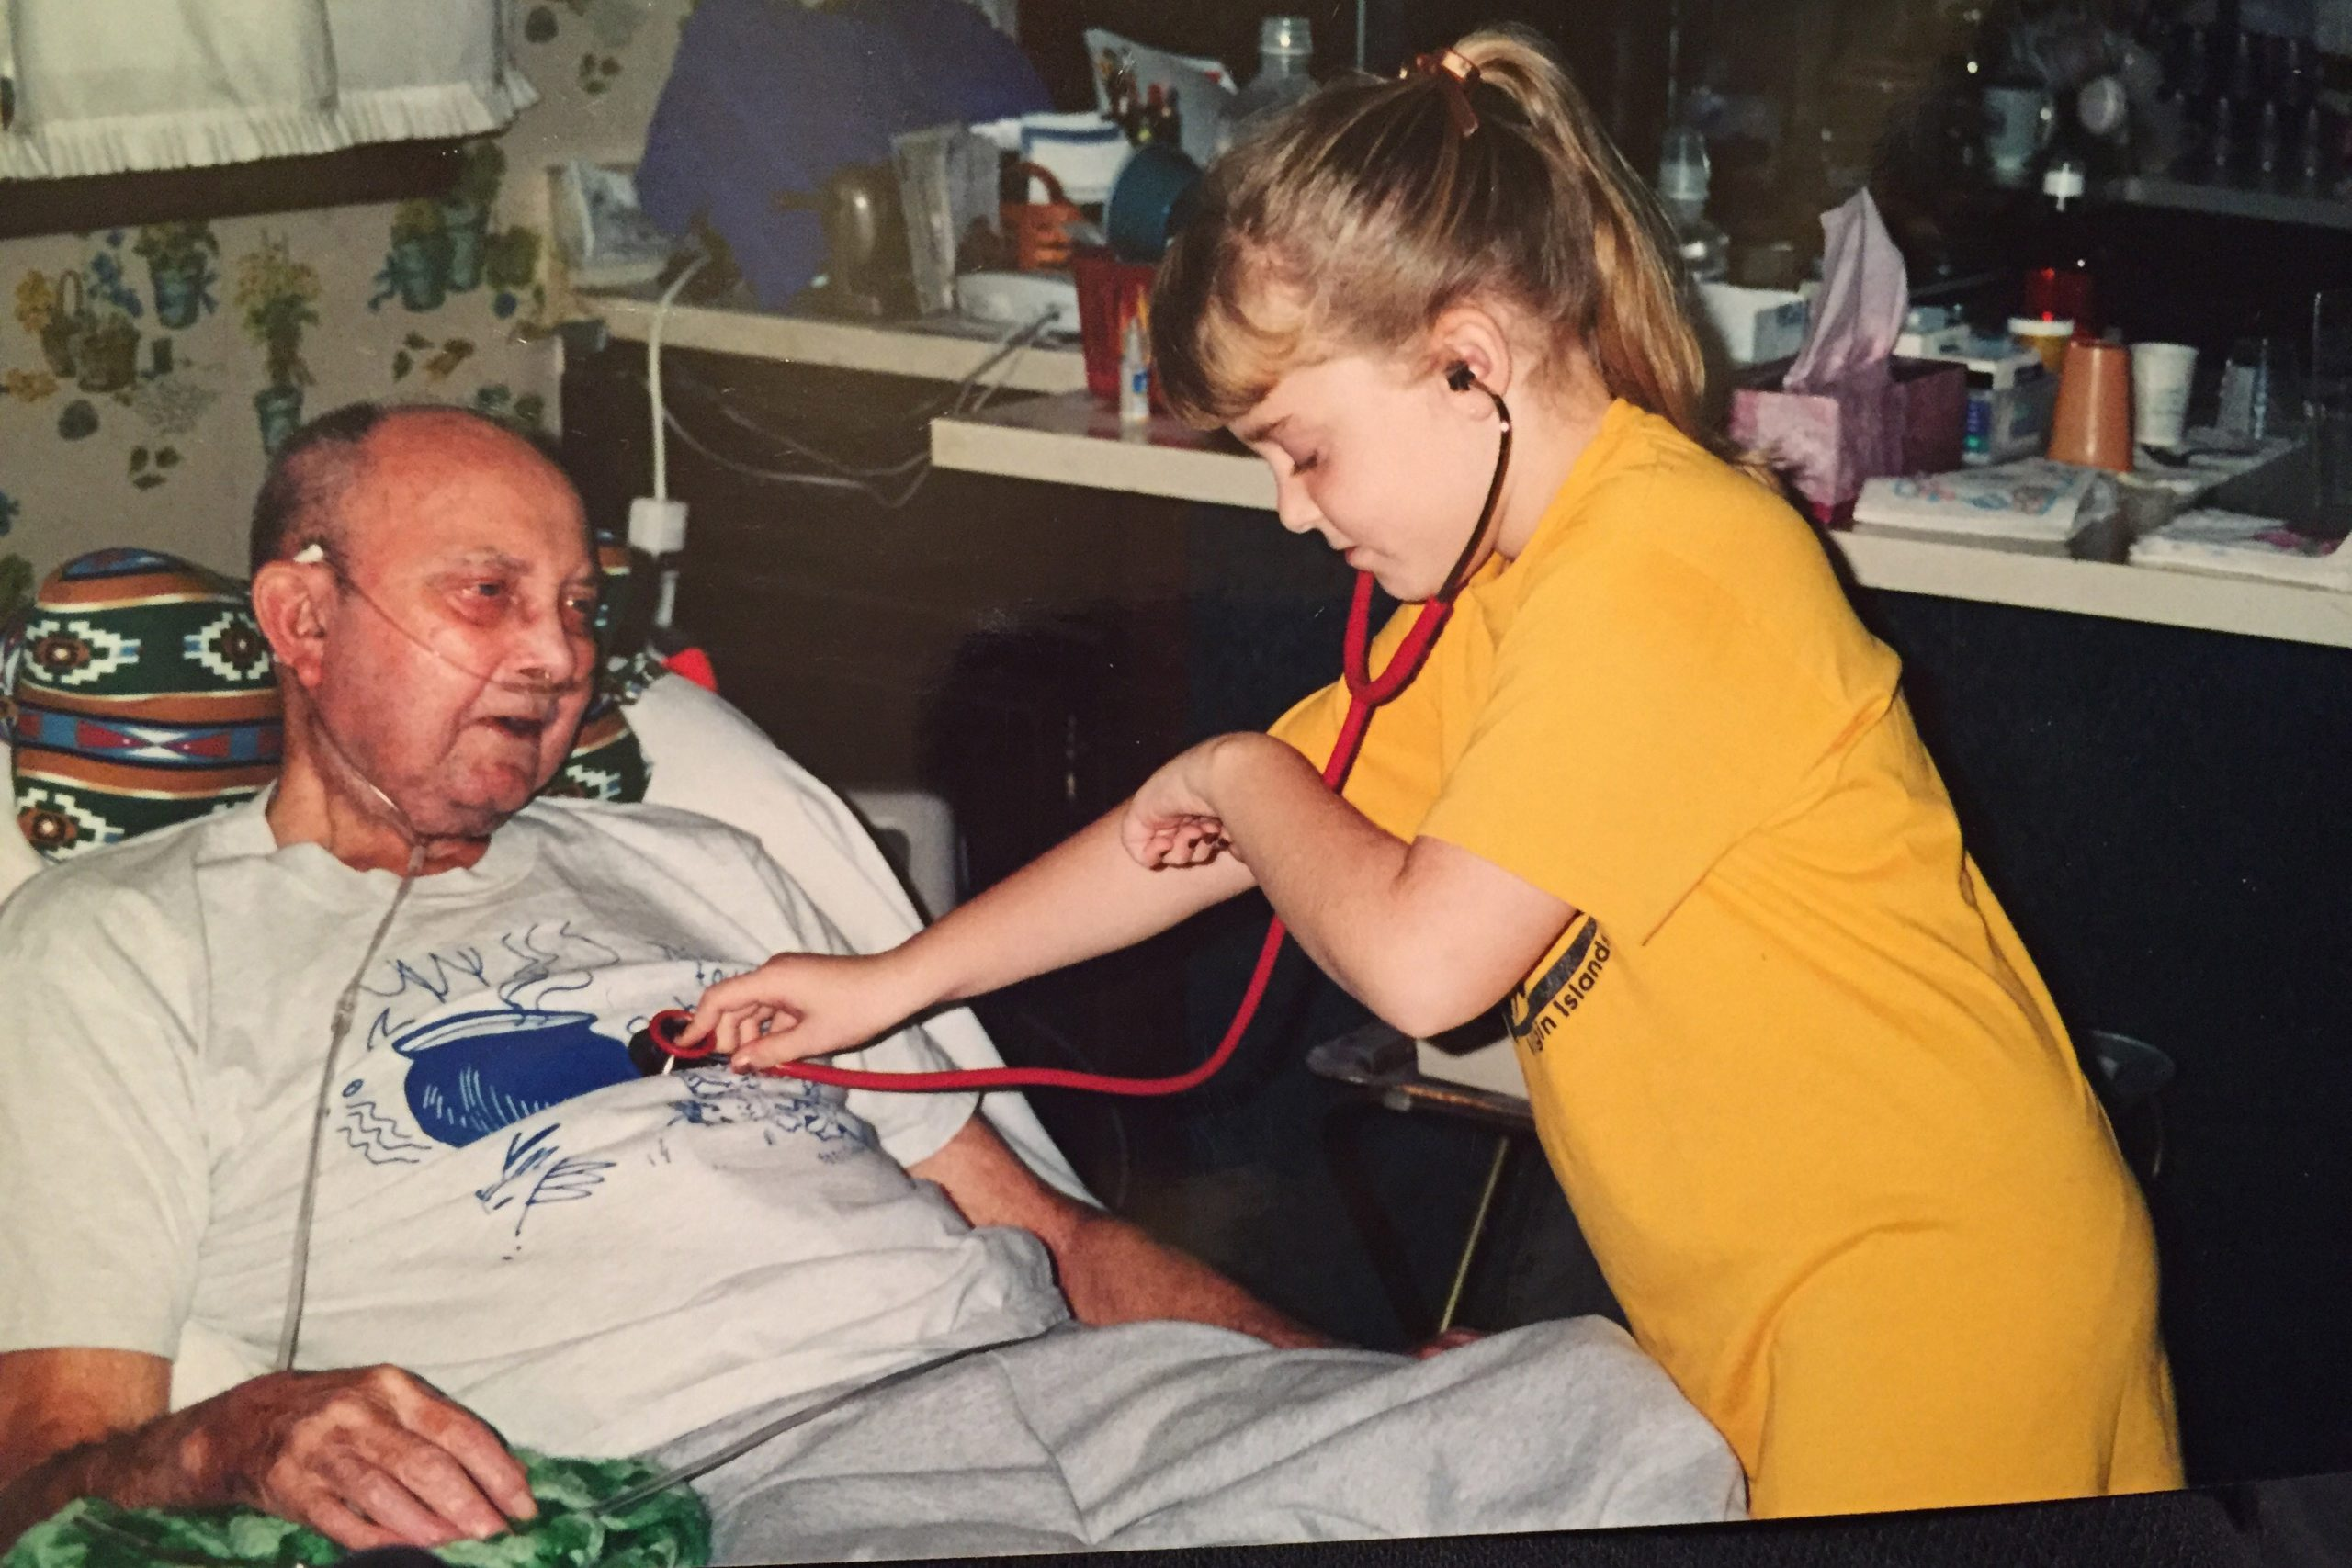 Marisa Weaver as a child, listening to her grandfather's heart with a stethoscope